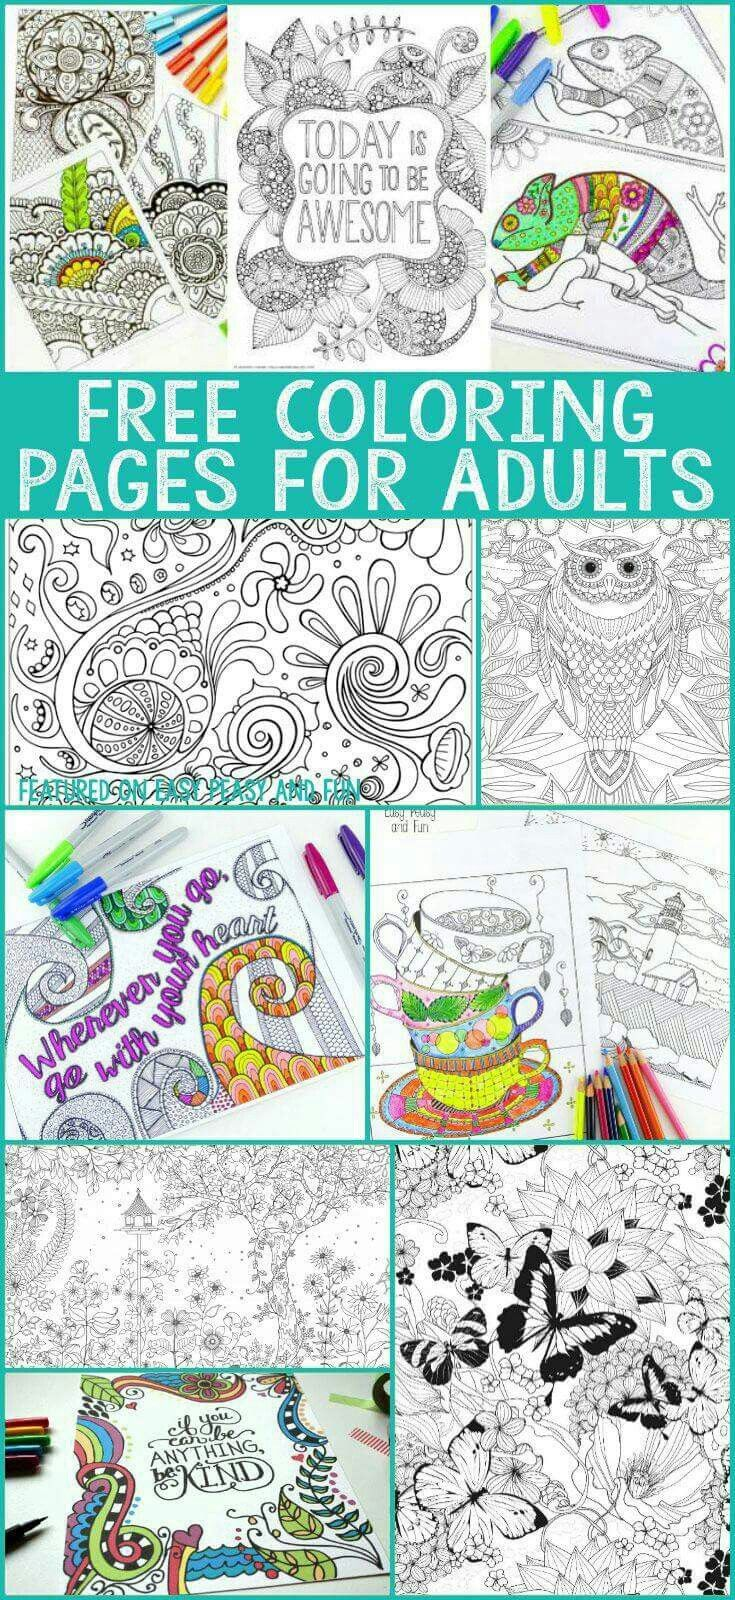 The zoology coloring book - Free Coloring Pages For Adults